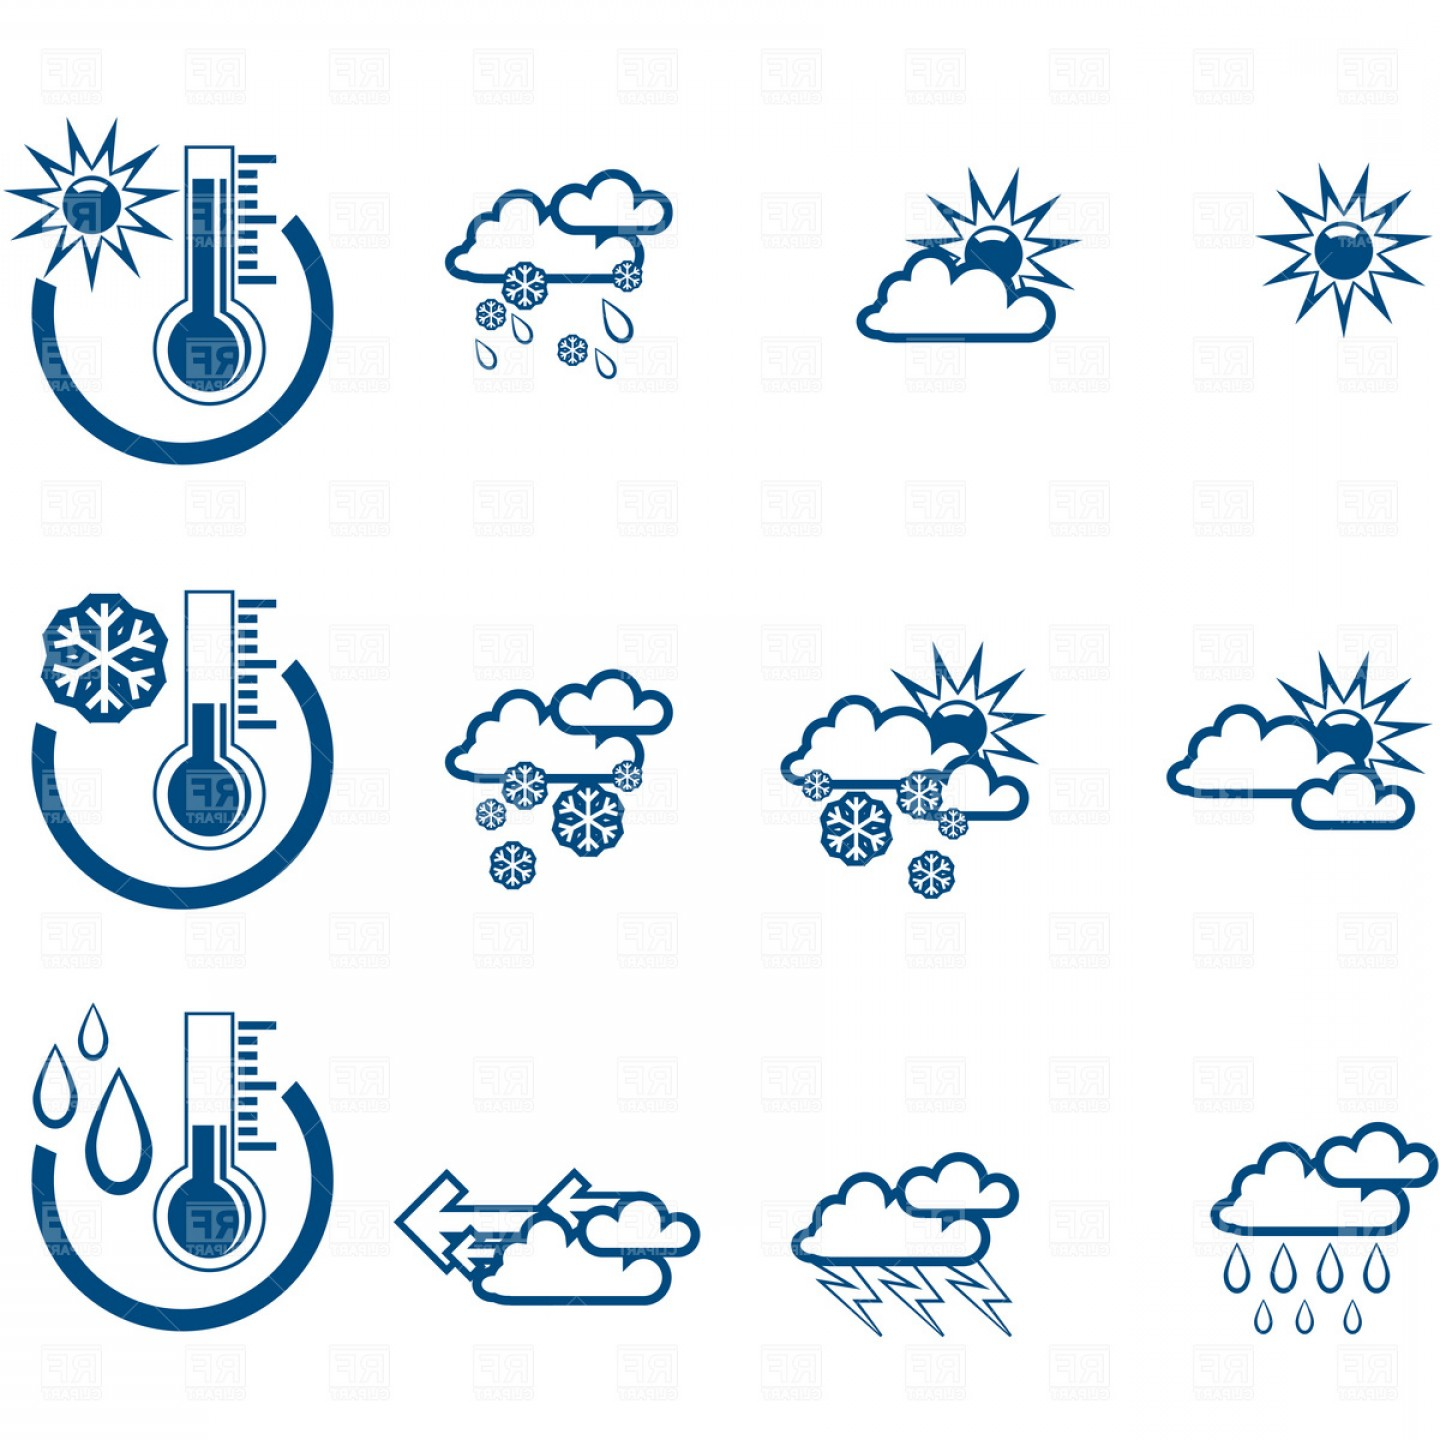 Forecast icon clipart black and white download Simple Weather Forecast Icons Vector Clipart | SOIDERGI black and white download